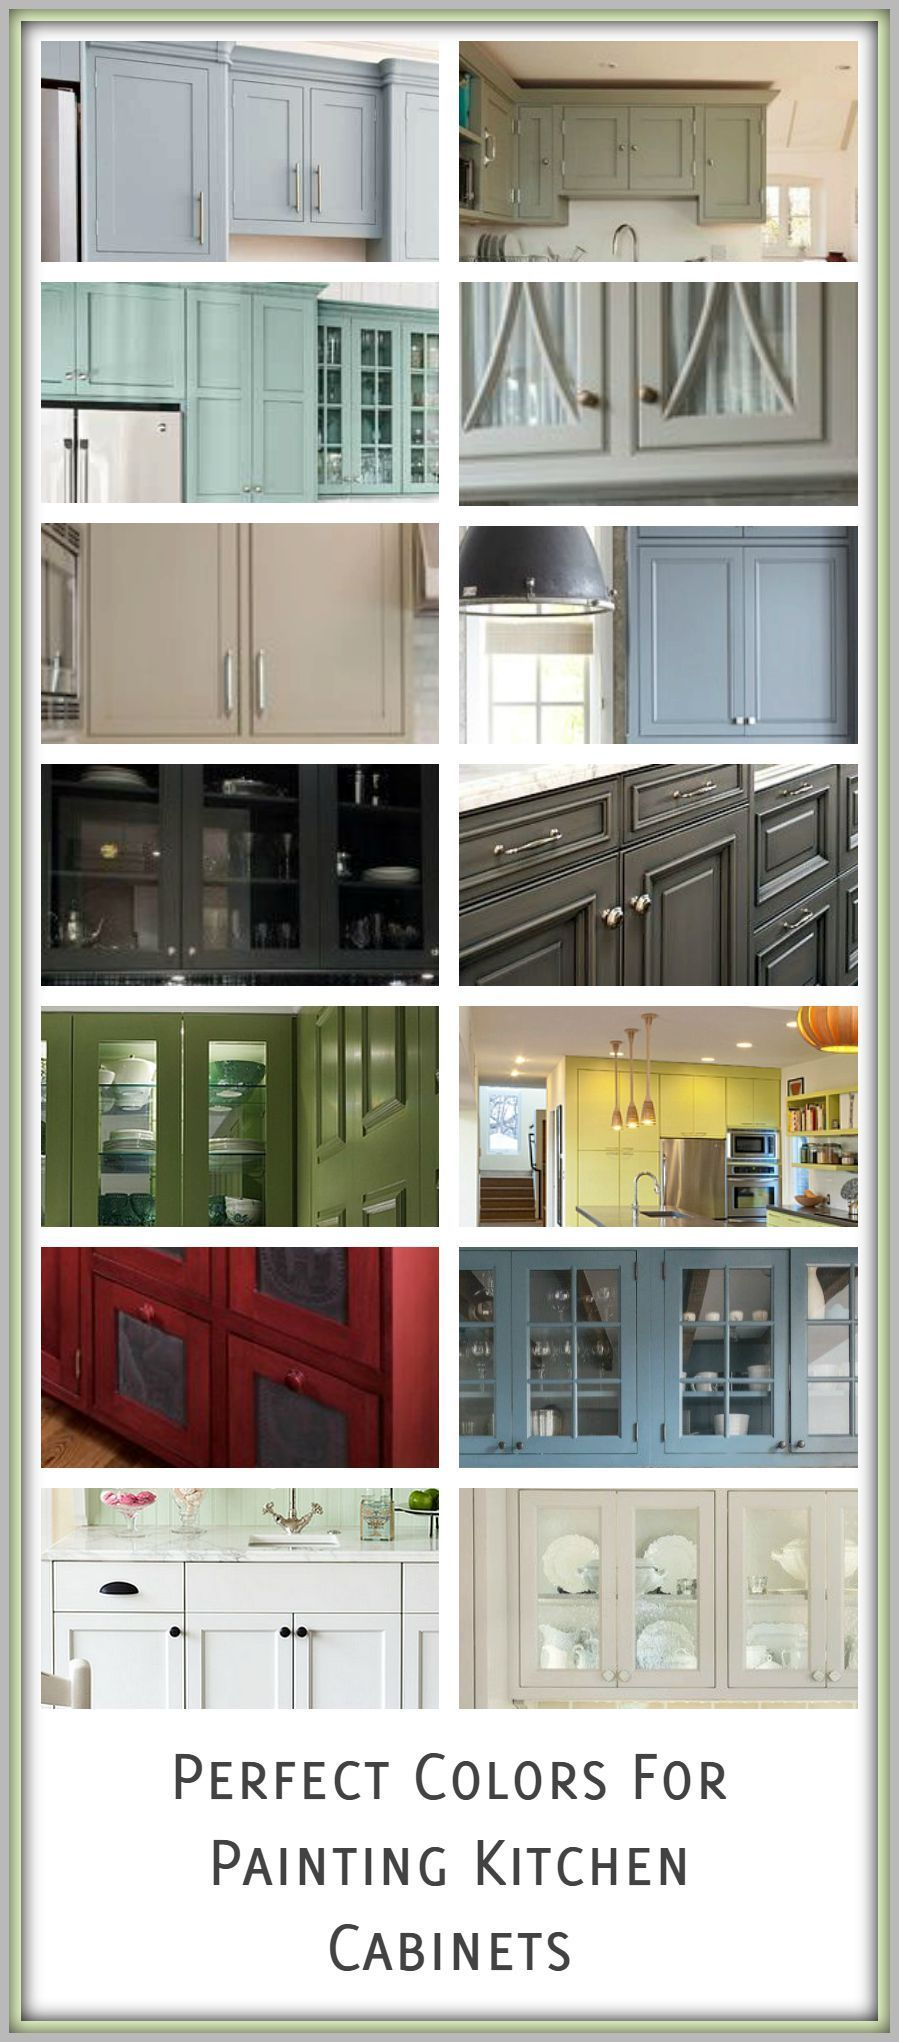 Great Colors for Painting Kitchen Cabinets | Los cambios, Cambio y ...